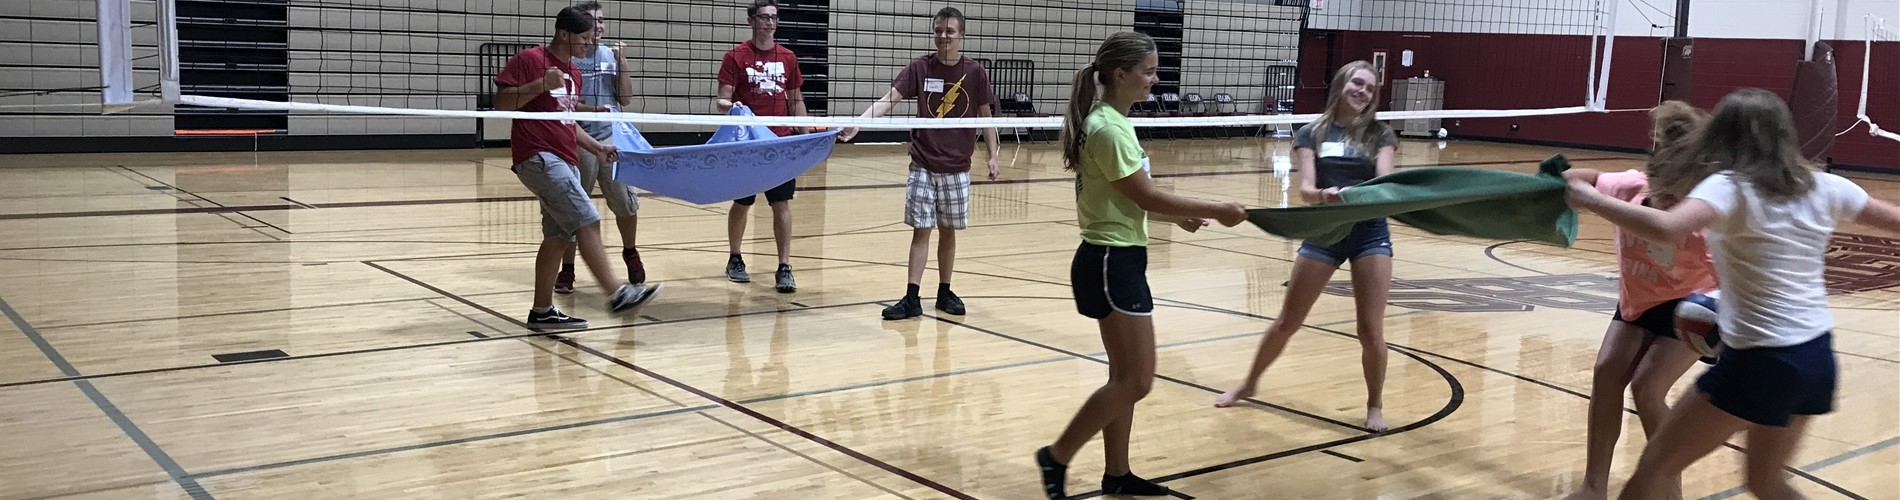 Volleyball at Leadership Day